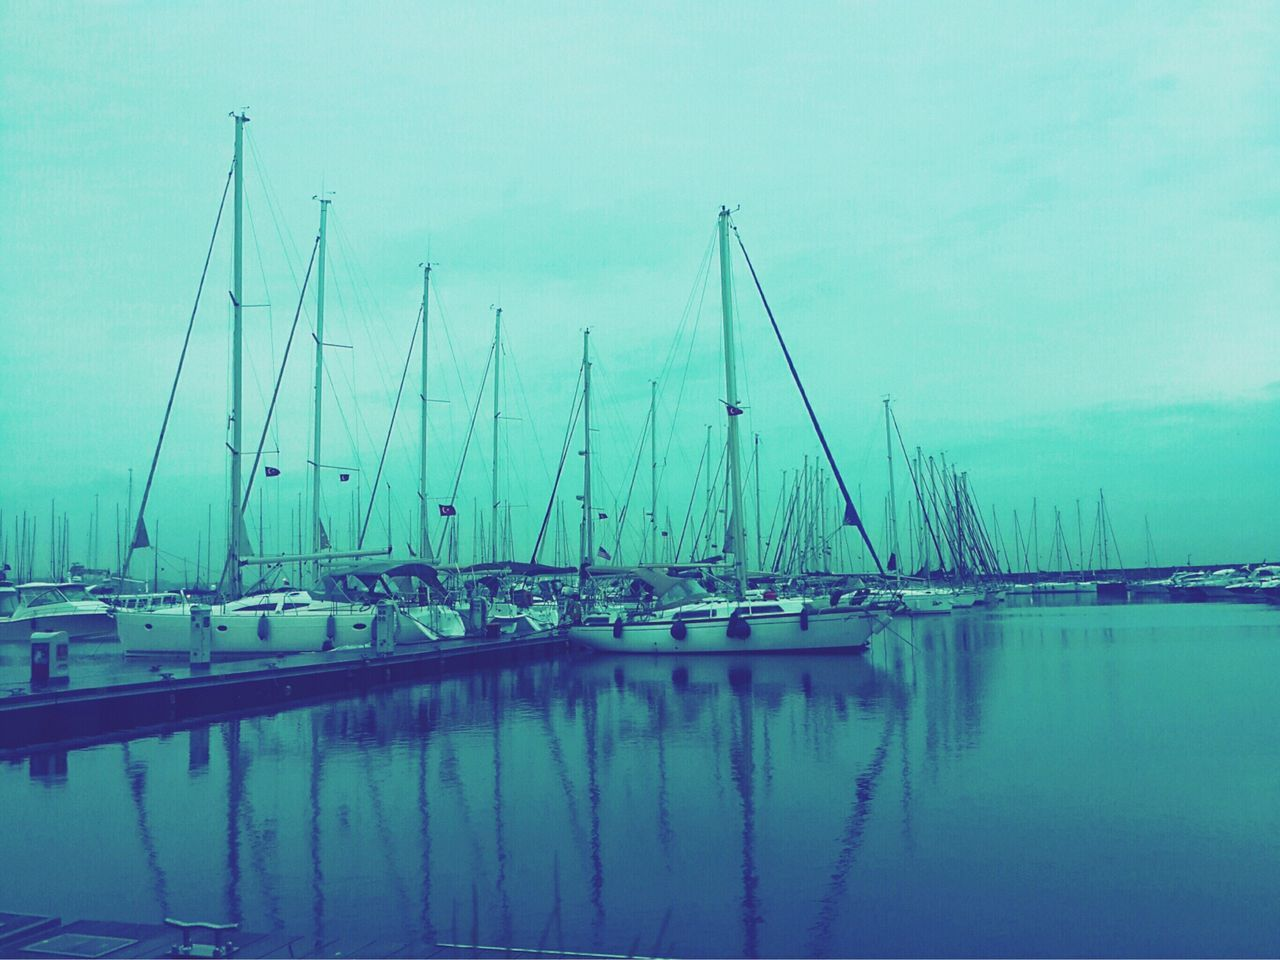 water, reflection, transportation, nautical vessel, no people, moored, mode of transport, outdoors, sky, day, waterfront, harbor, tranquility, mast, blue, nature, sailboat, beauty in nature, yacht, architecture